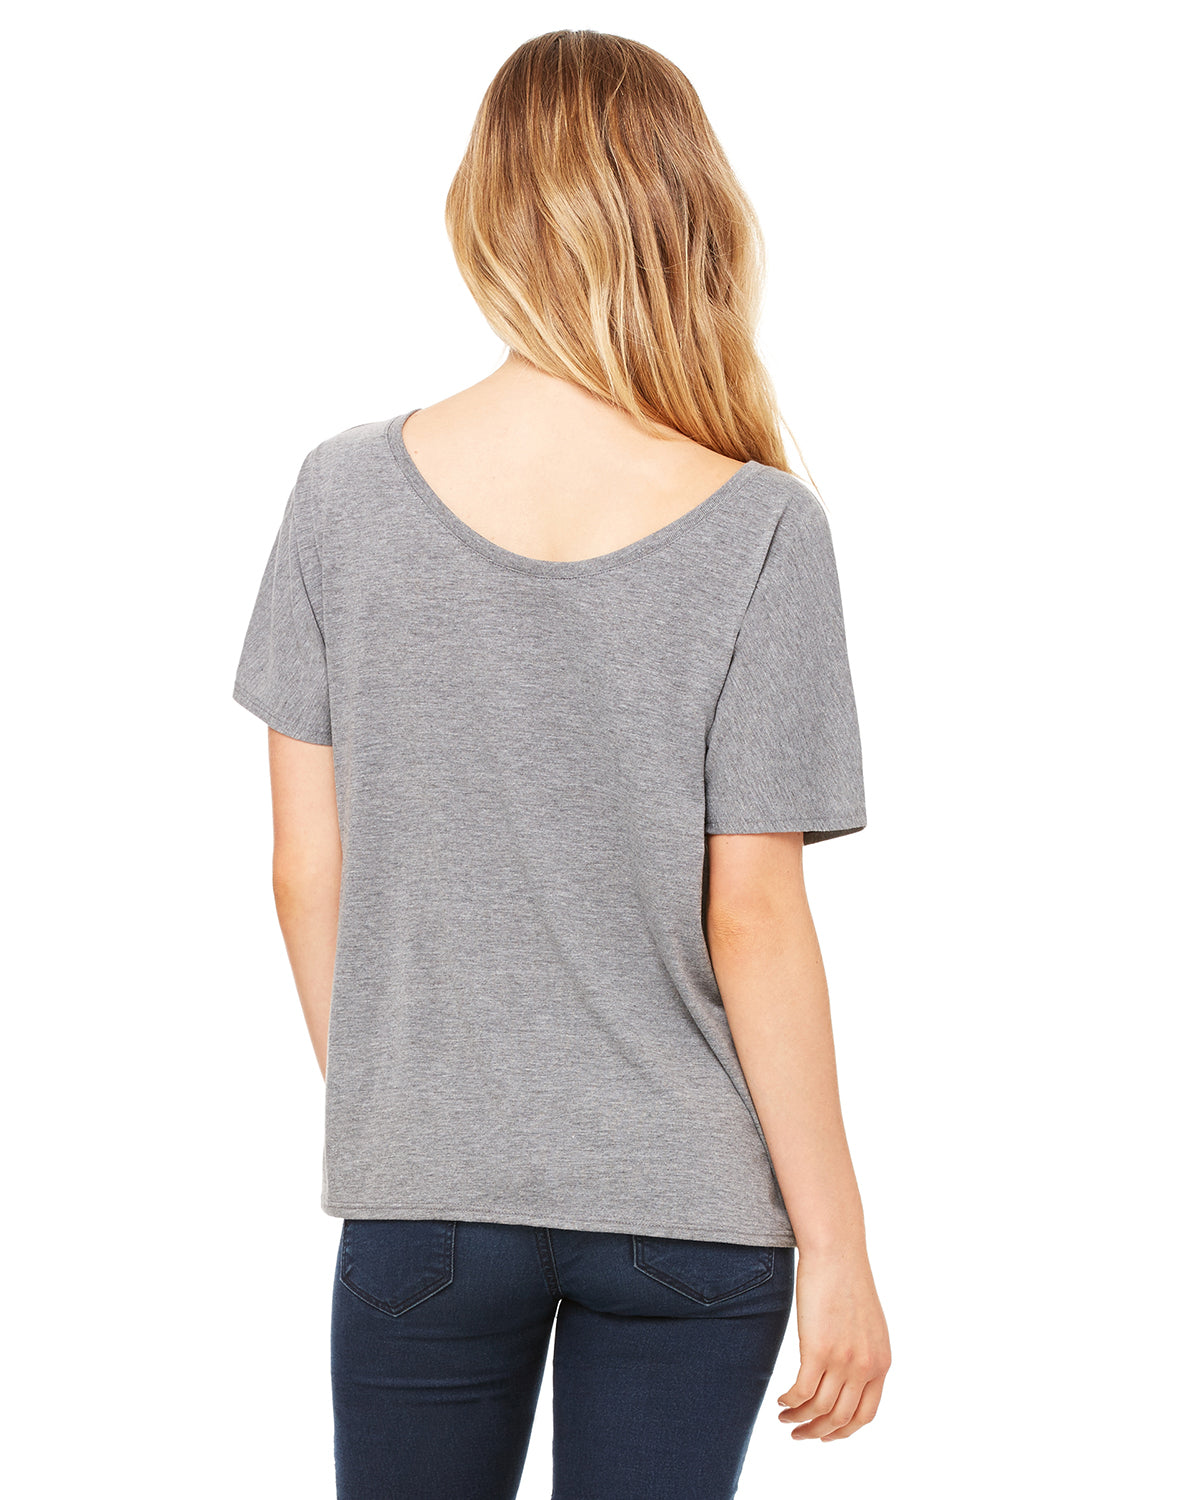 Nap Queen Slouchy T-Shirt Gray Triblend